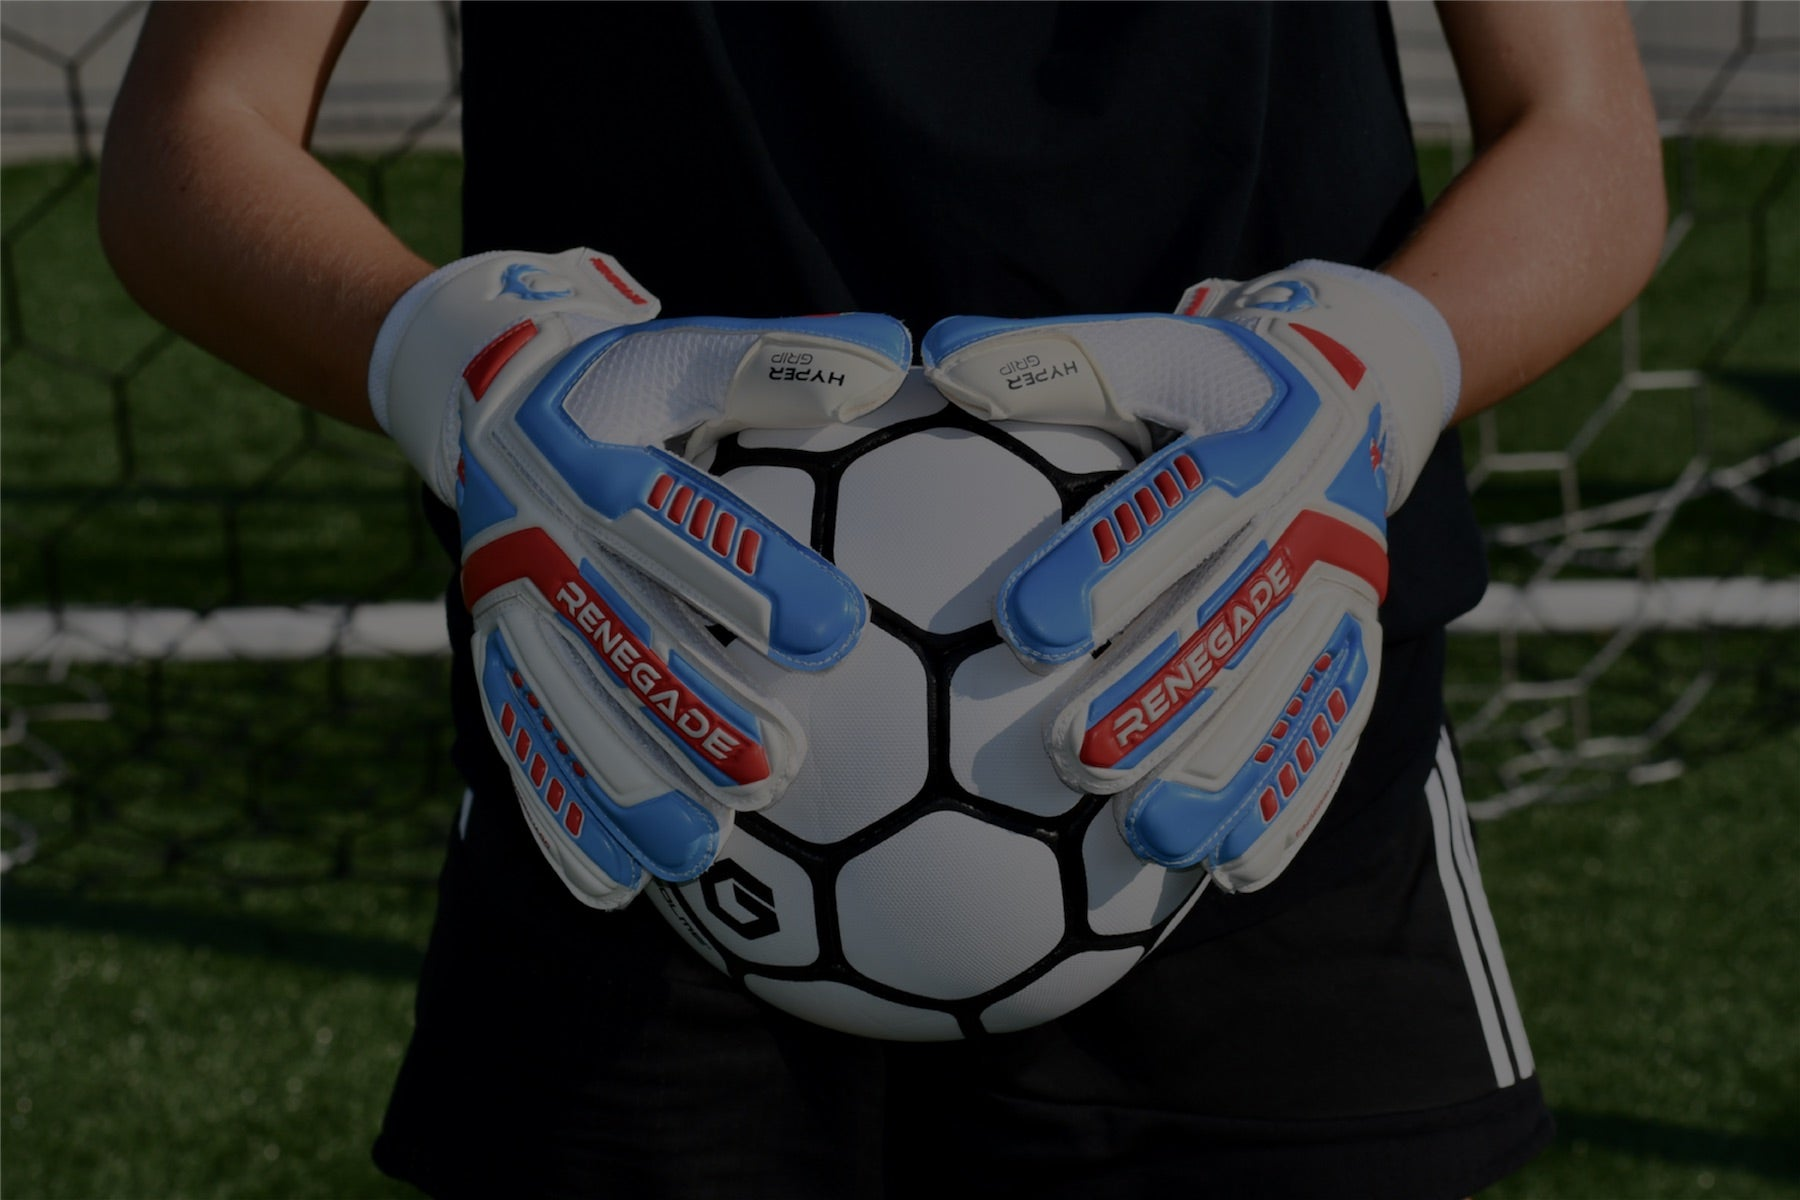 goalie holding the ball with 2 hands while wearing soccer gloves for goalkeepers